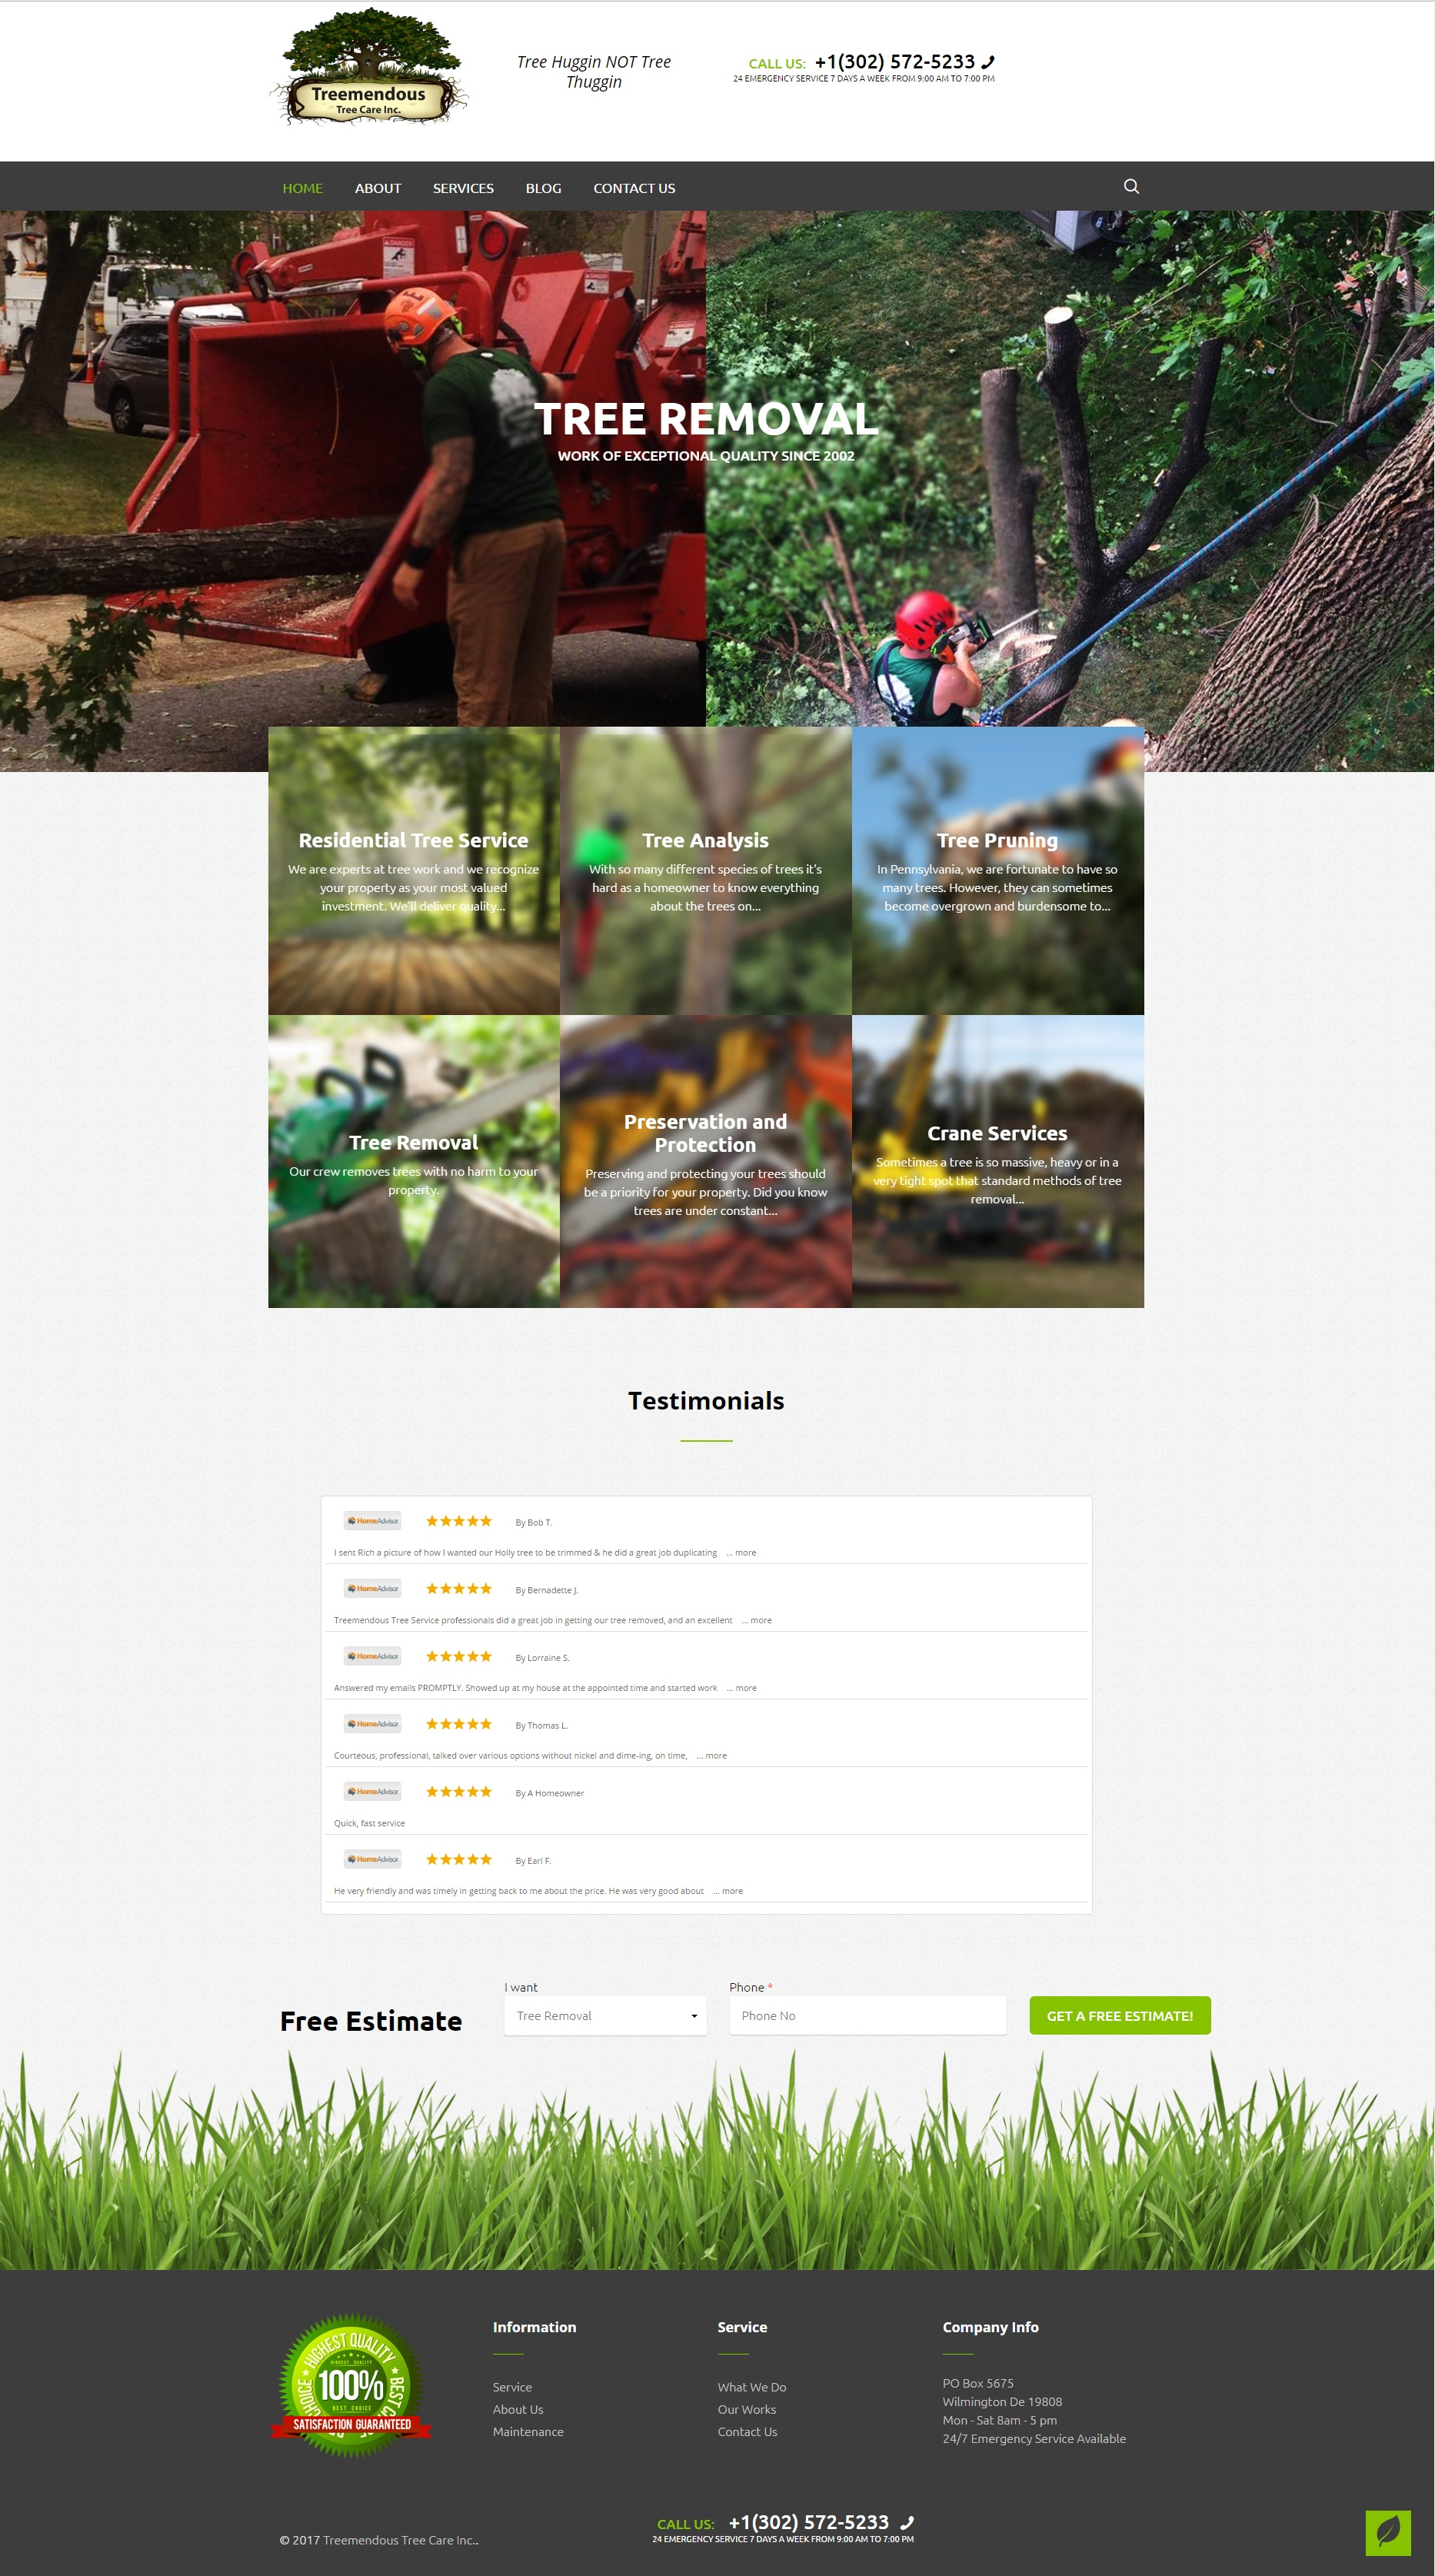 Tree Service Website Development - Treemendous Tree Services Lite.jpg